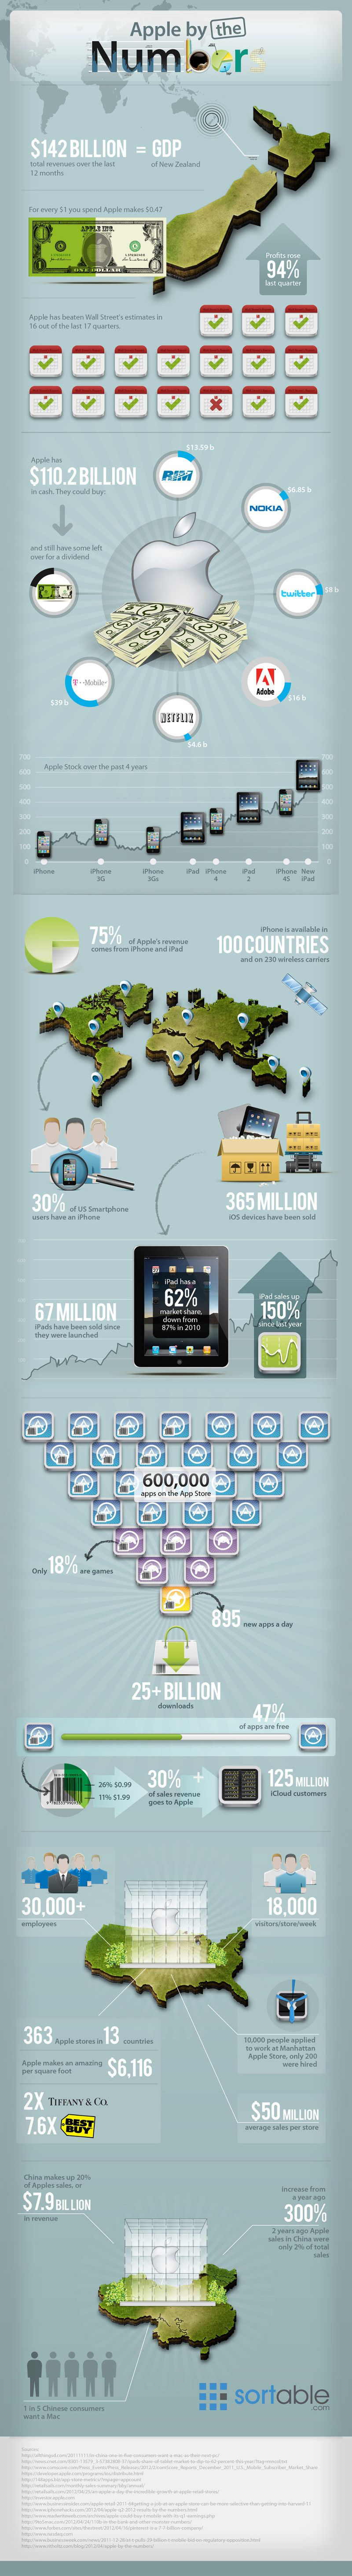 Whose into #Apple .. #Apple by the Numbers #infographic